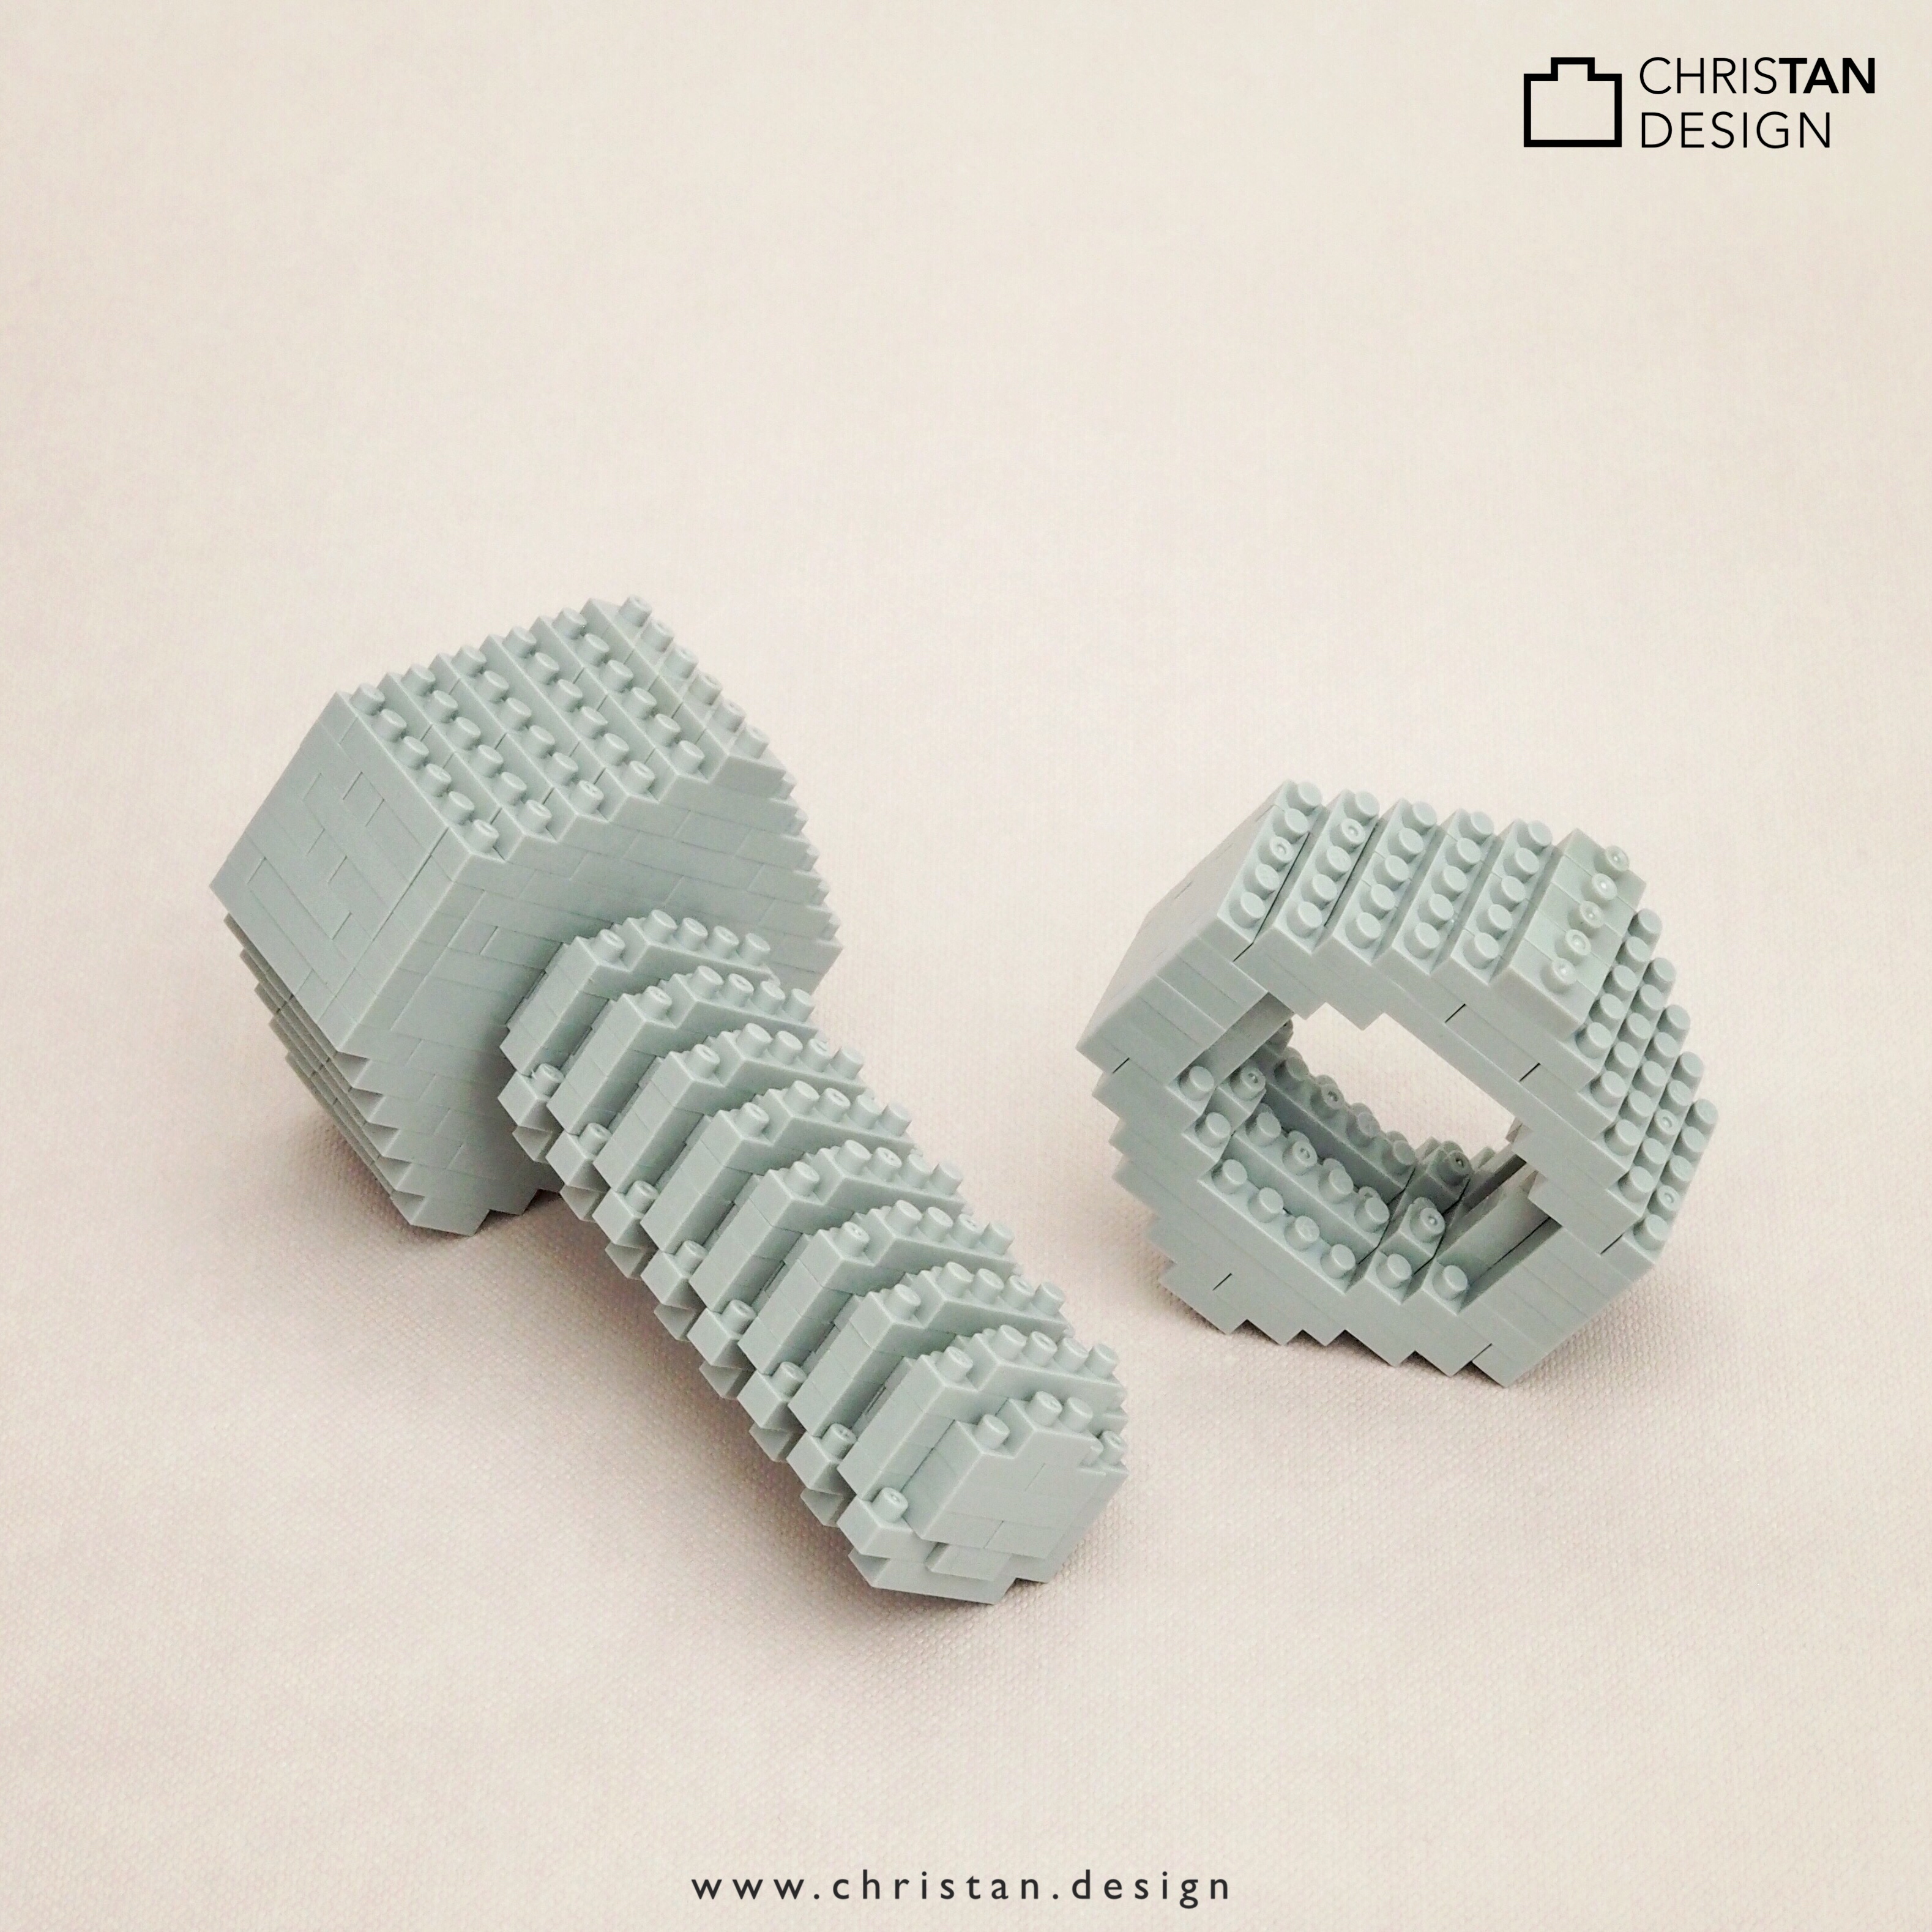 nanoblock Nut and Bolt